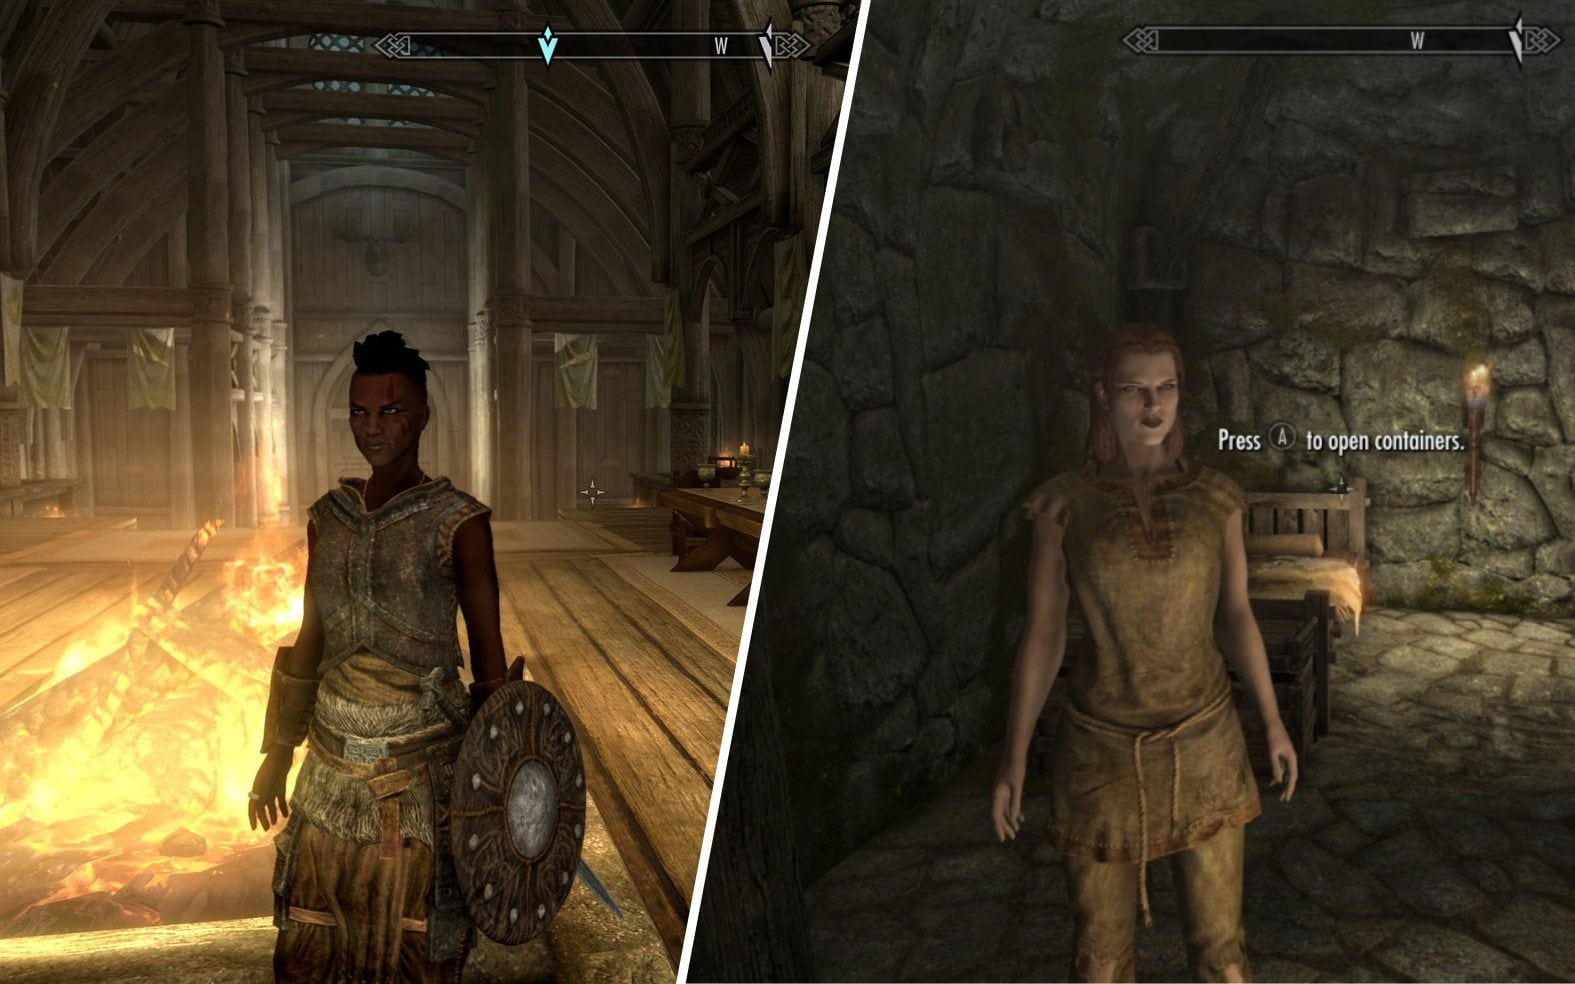 La differenza di illuminazione su pelle chiara e scura in Skyrim